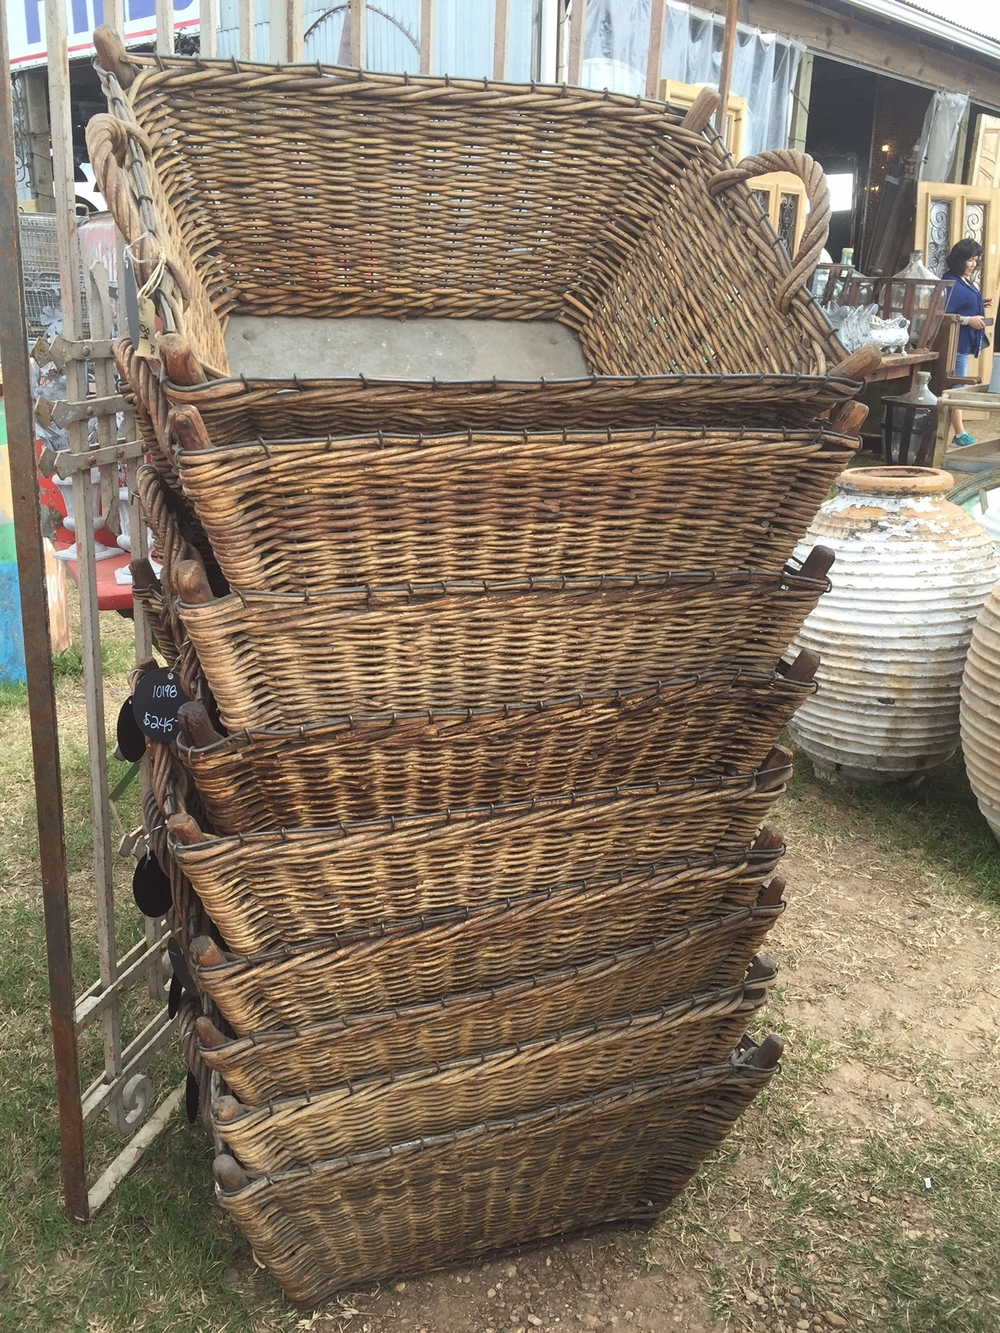 Never a shortage of baskets at this fair!